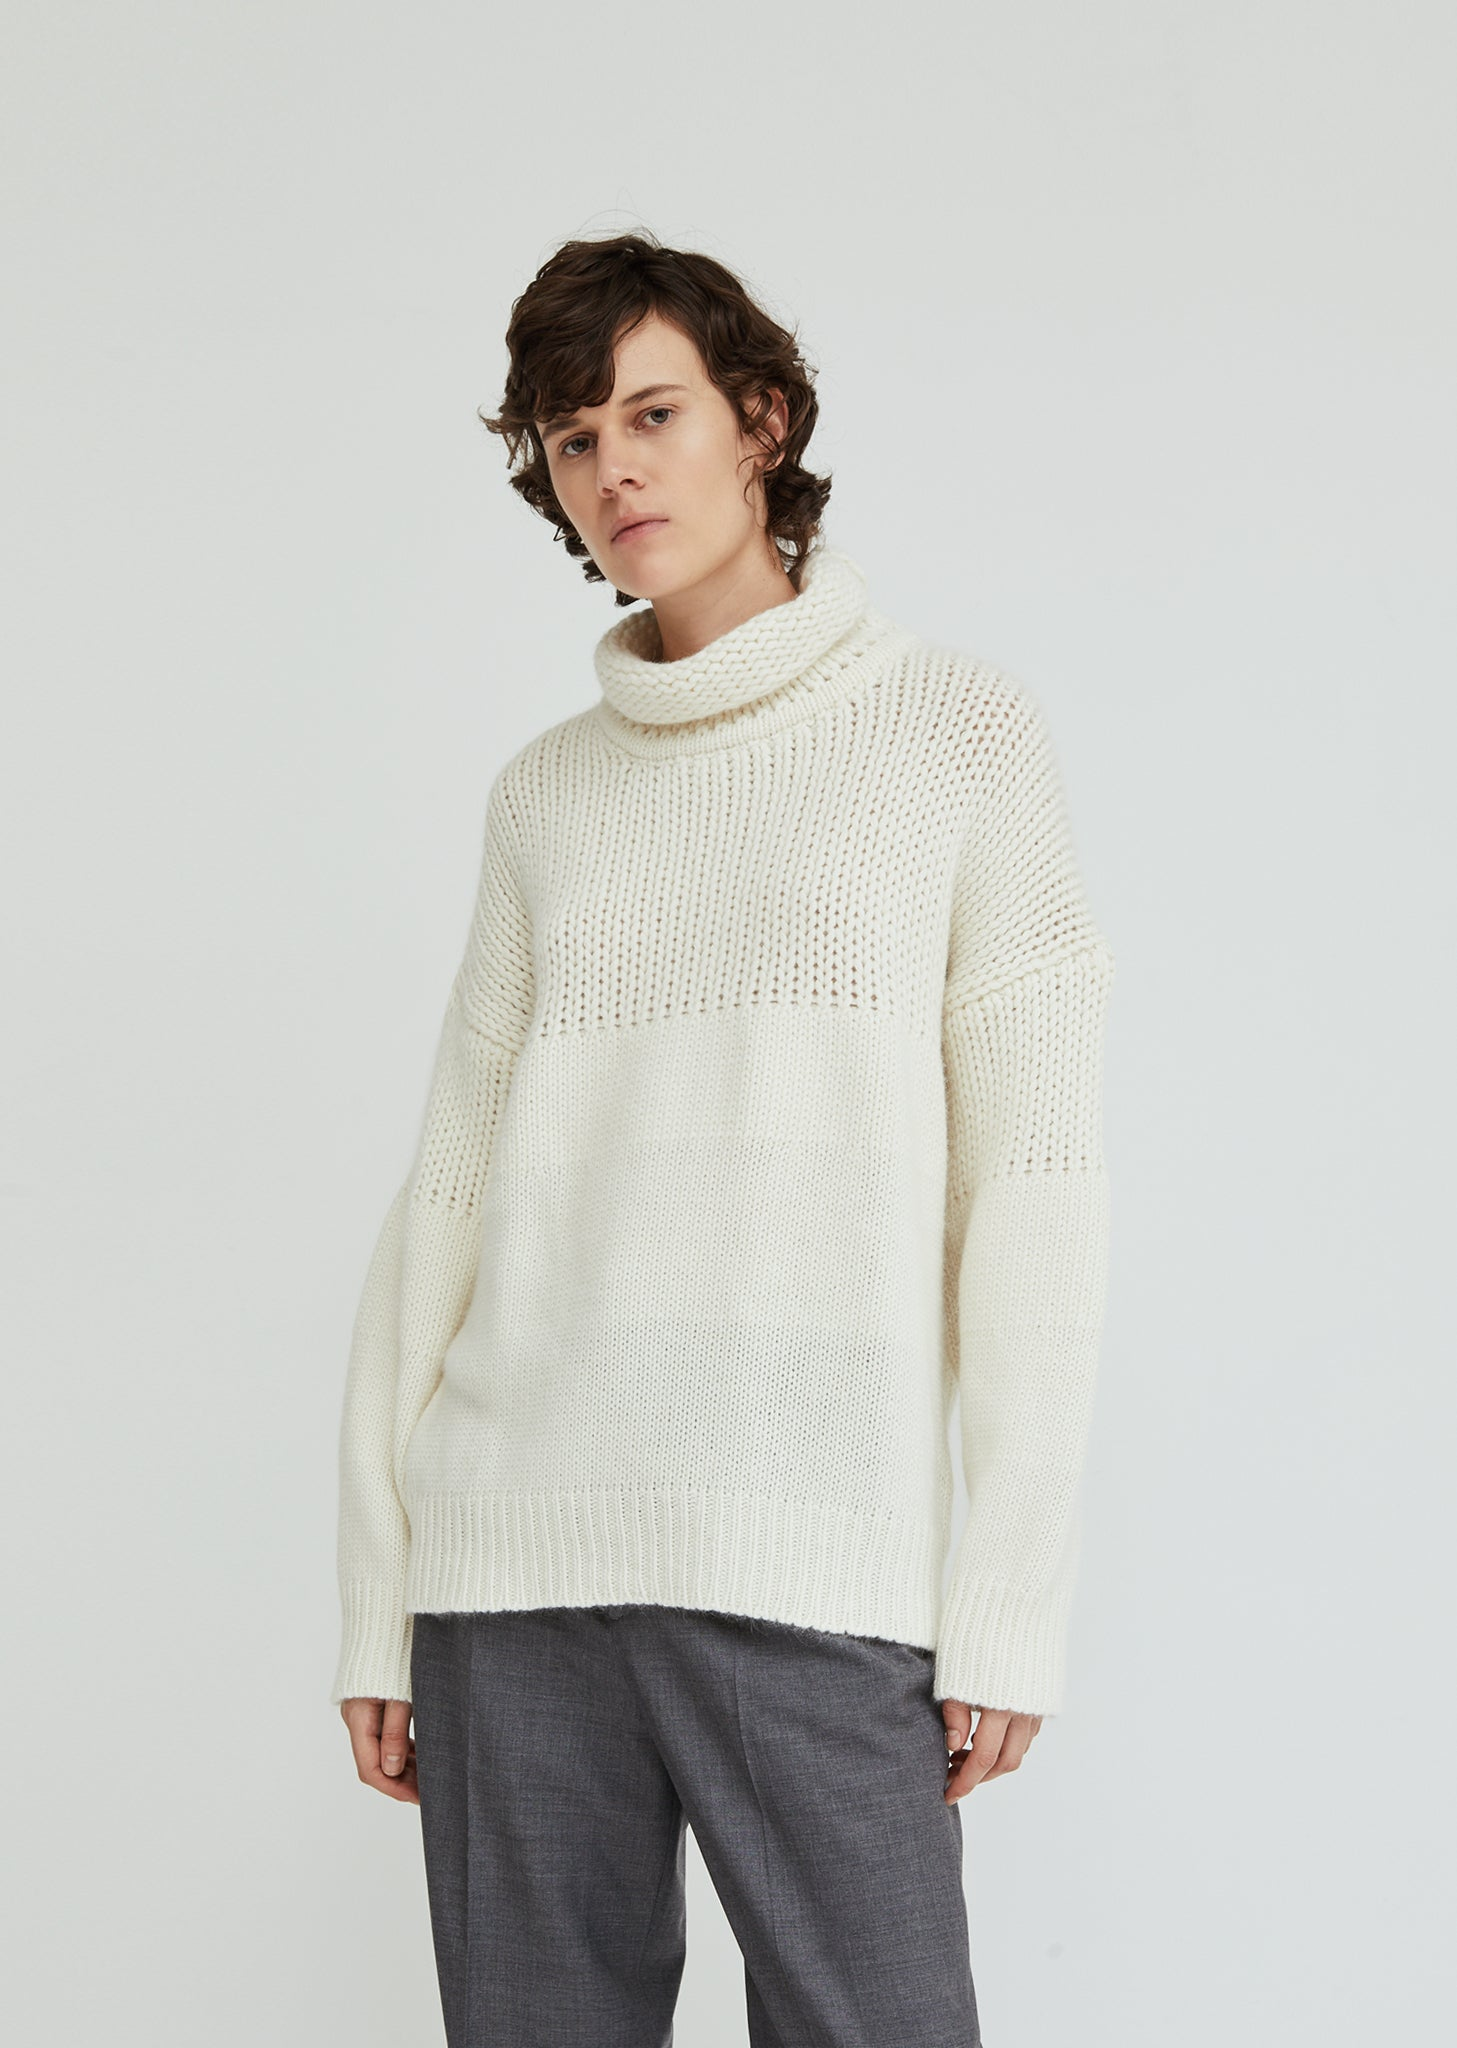 e3d8e8220 Turtleneck Sweater by Jil Sander- La Garçonne